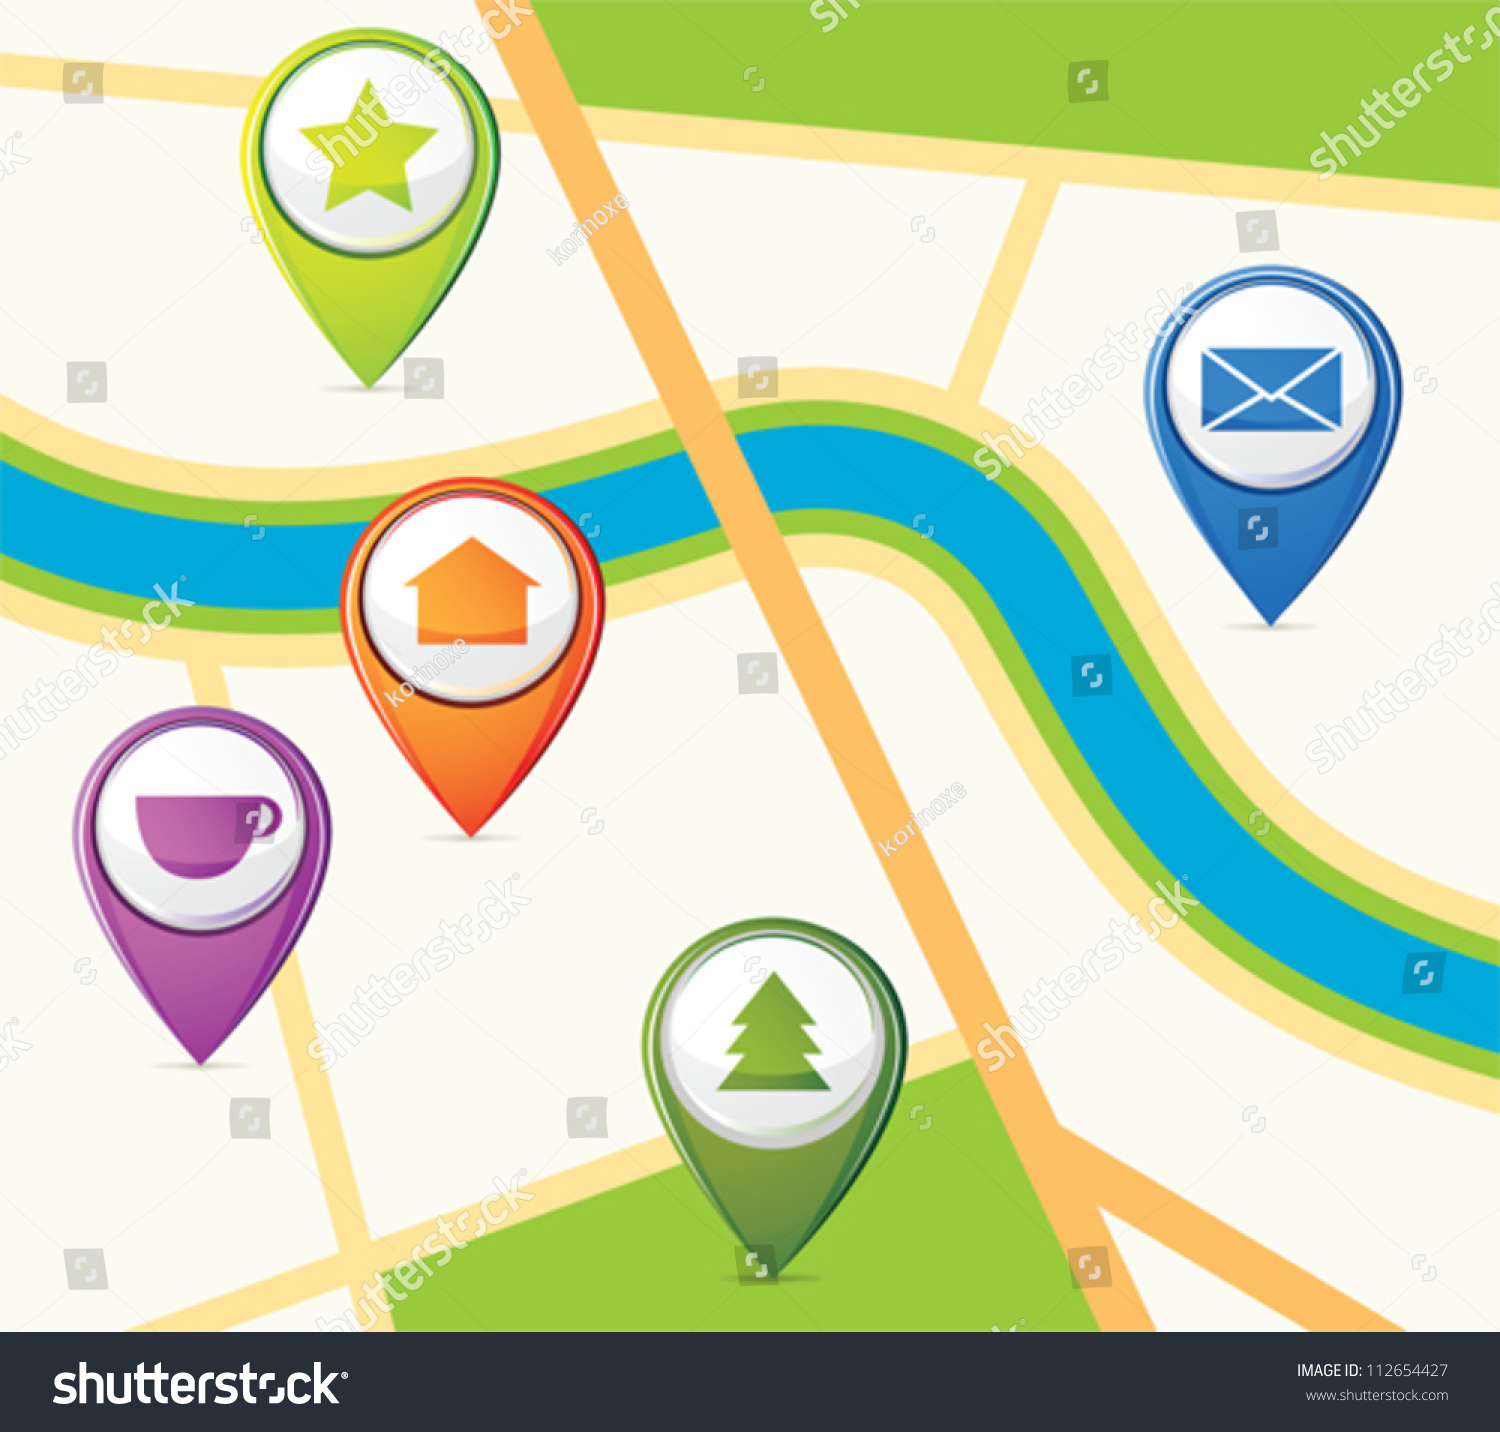 Simple Map Few Pins Stock Vector 112654427 - Shutterstock